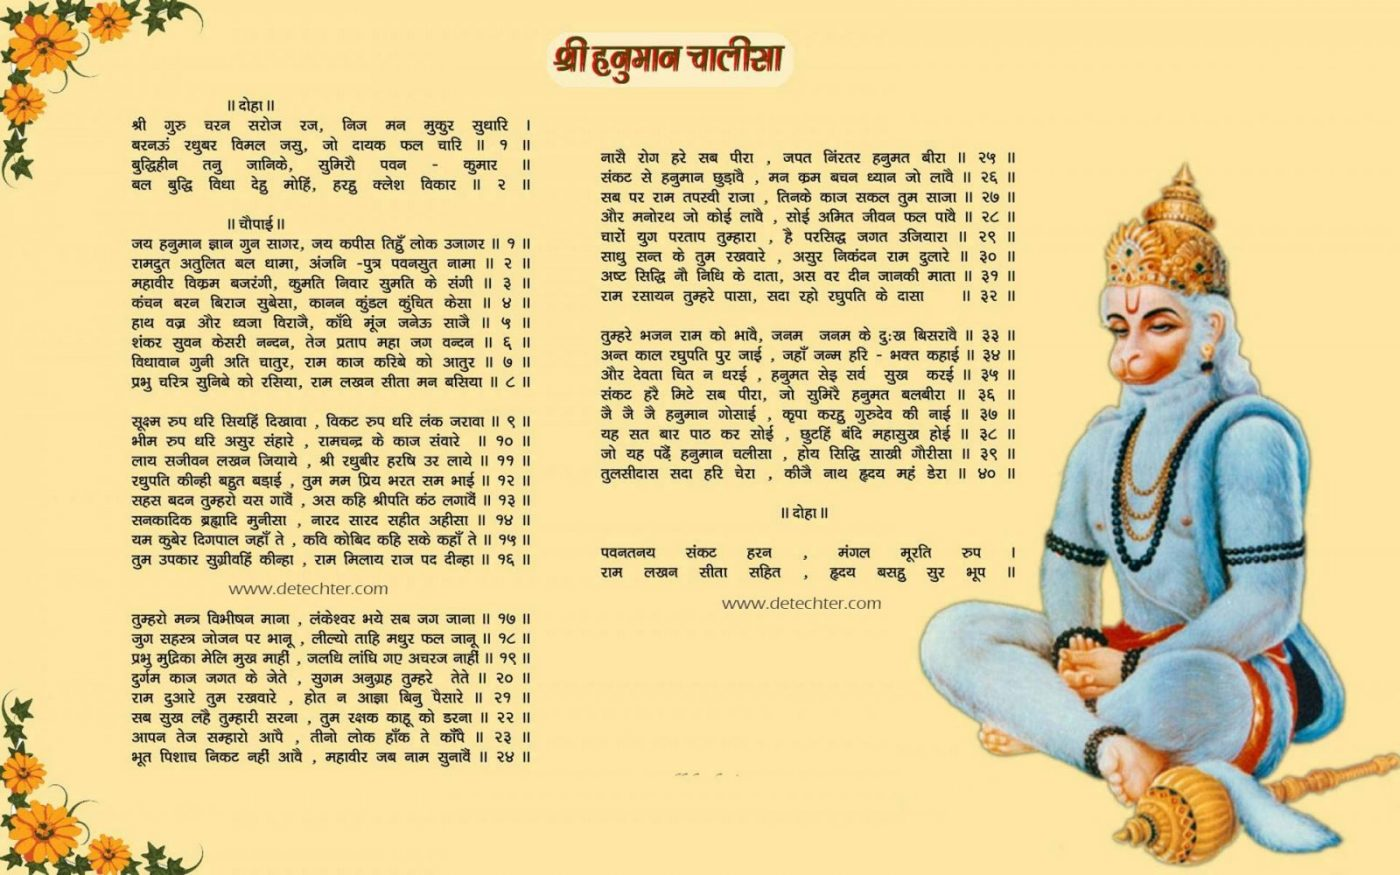 Hanuman Bajrang Baan and Hanuman Chalisa – The State